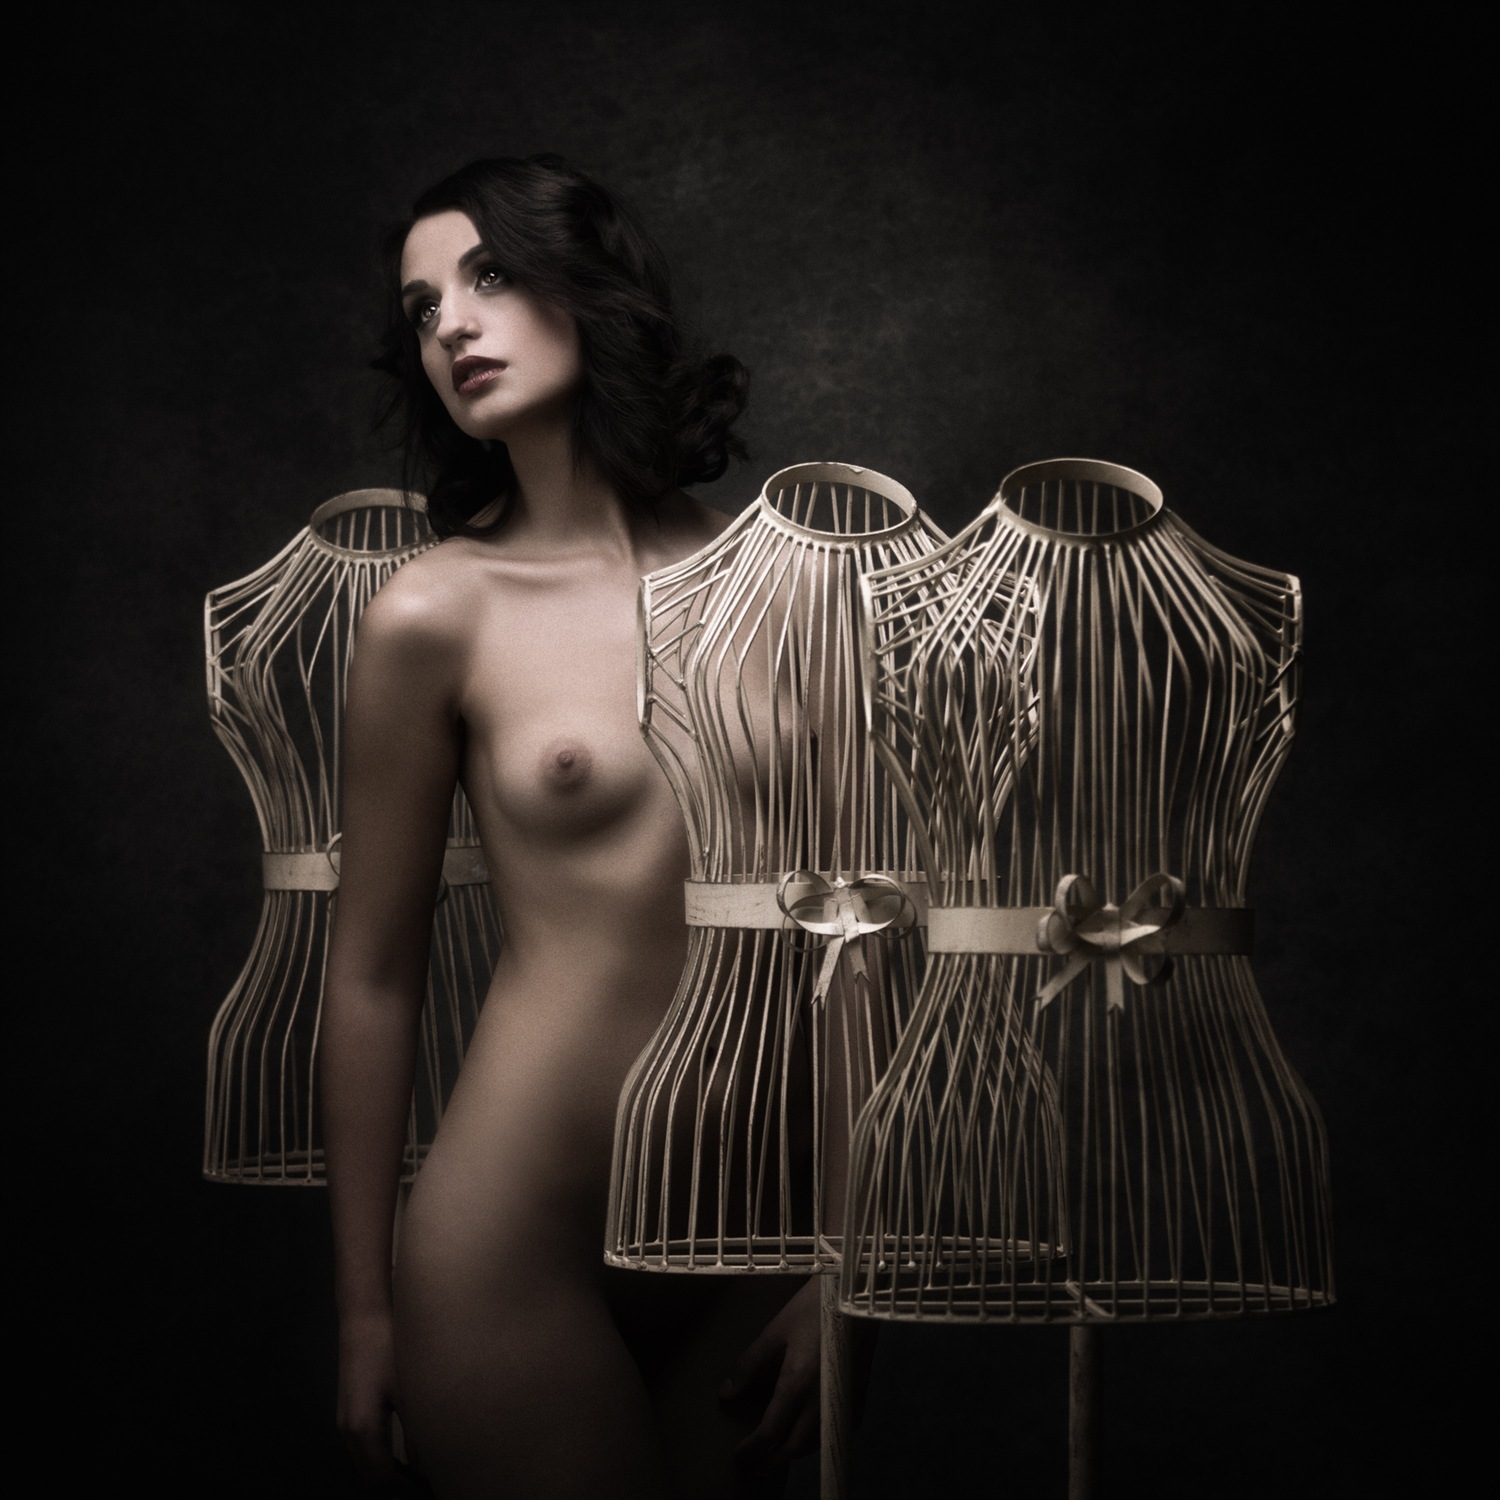 Do the mannequins dream? by Zelei Peter